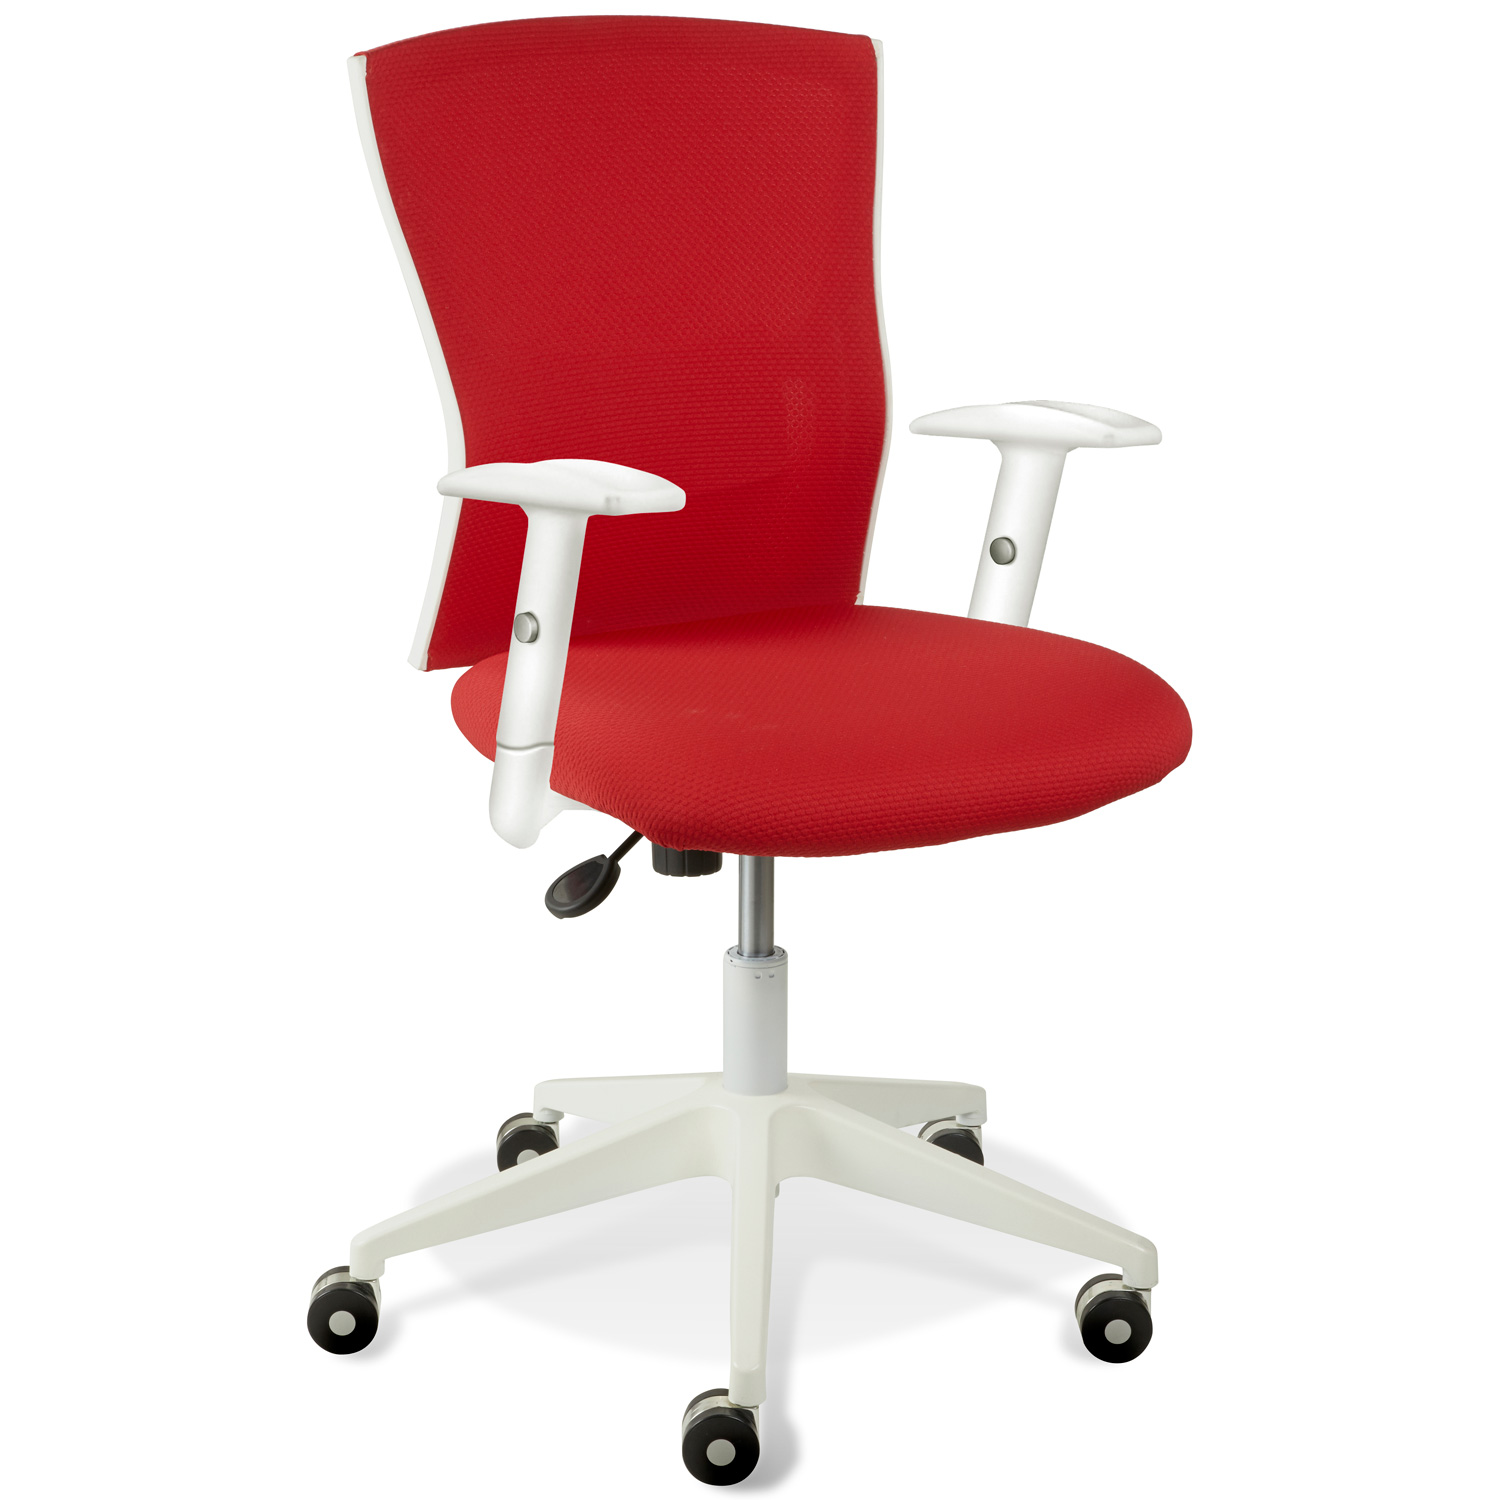 Sanne Office Chair - Tilt, Adjustable Arms, White & Red